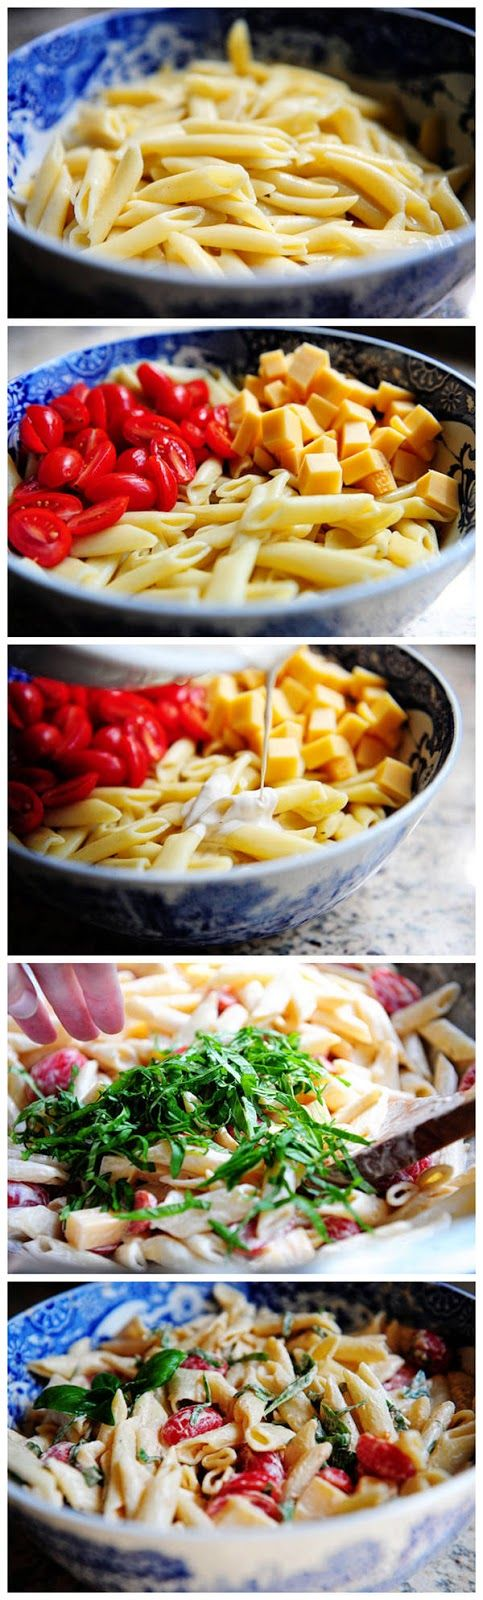 Spicy Pasta Salad with Smoked Gouda, Tomatoes, and Basil | Salads ...